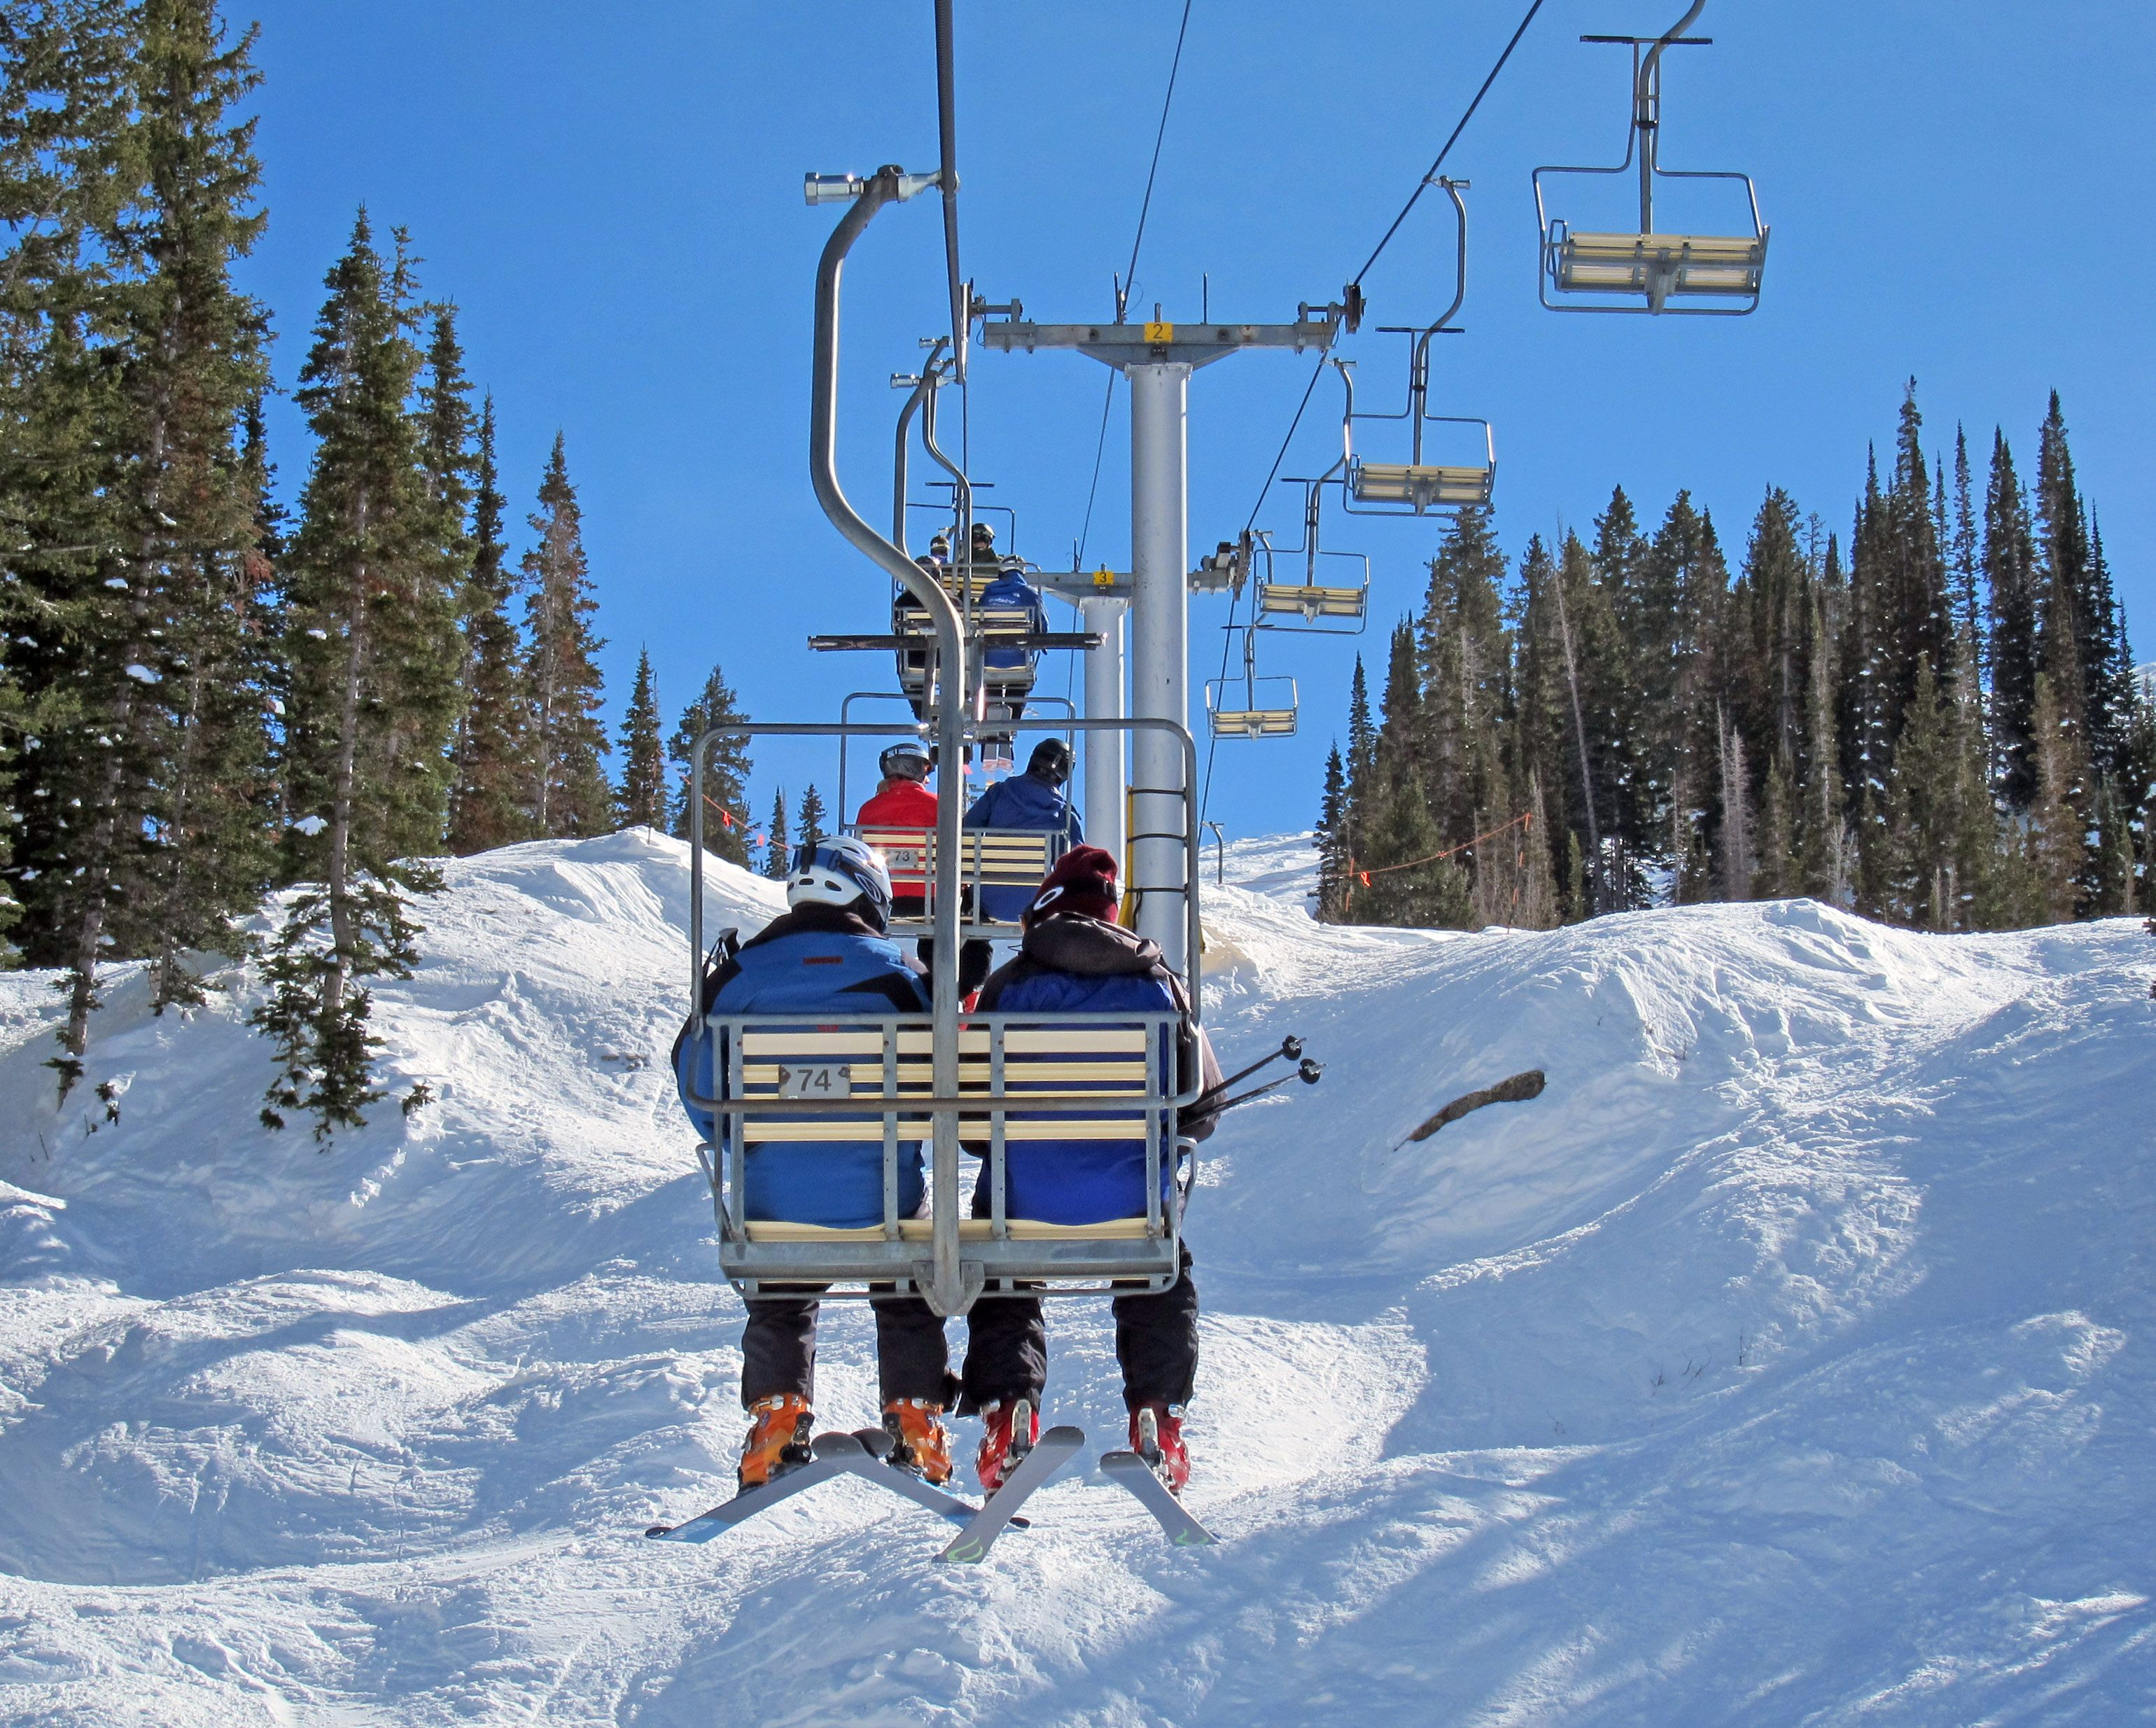 Chairlift | Trams, Gondolas, Chairlifts, Funiculars, etc. | Pinterest